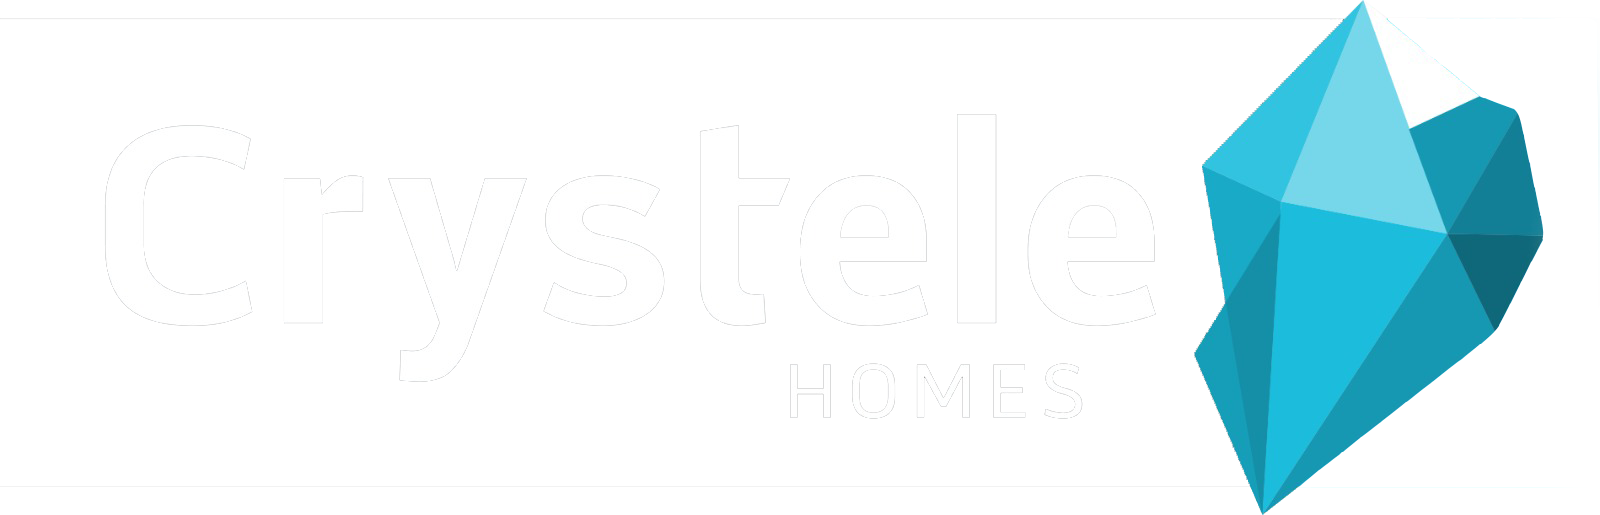 crystelehomes logo